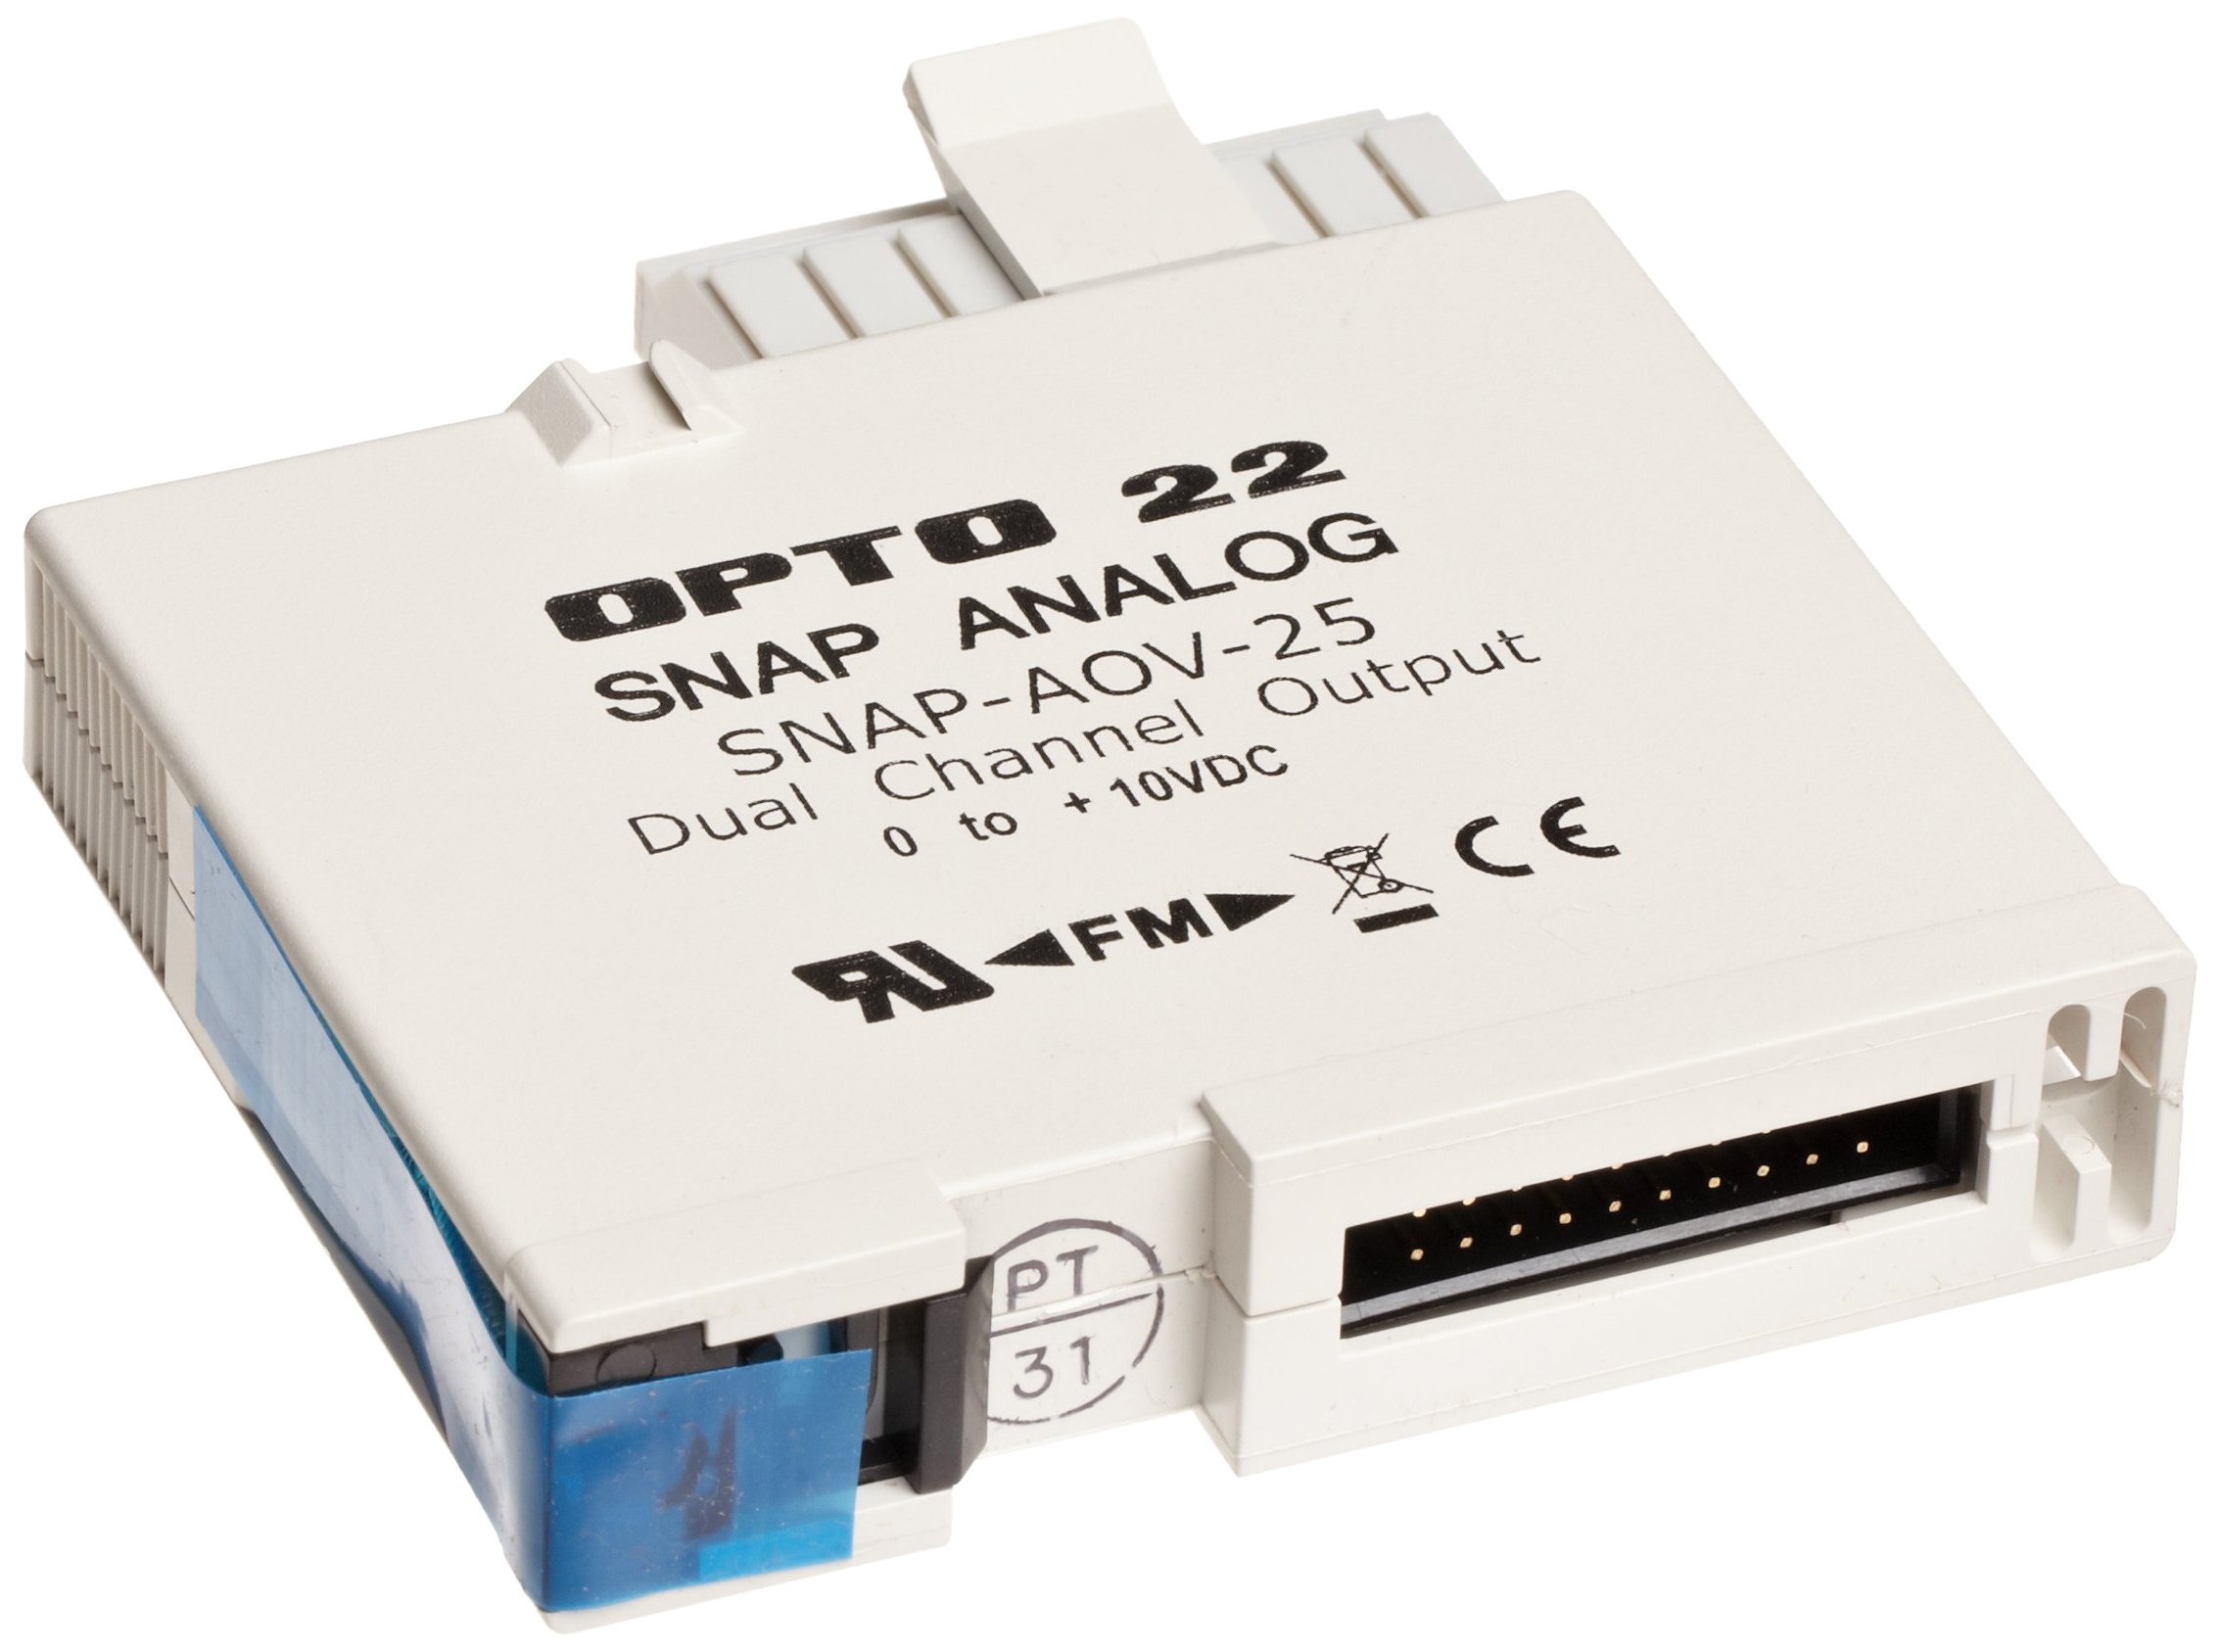 Opto 22 SNAP-AOV-25 - SNAP Analog Voltage Output Module, 2-Channel, 0-10 VDC Output